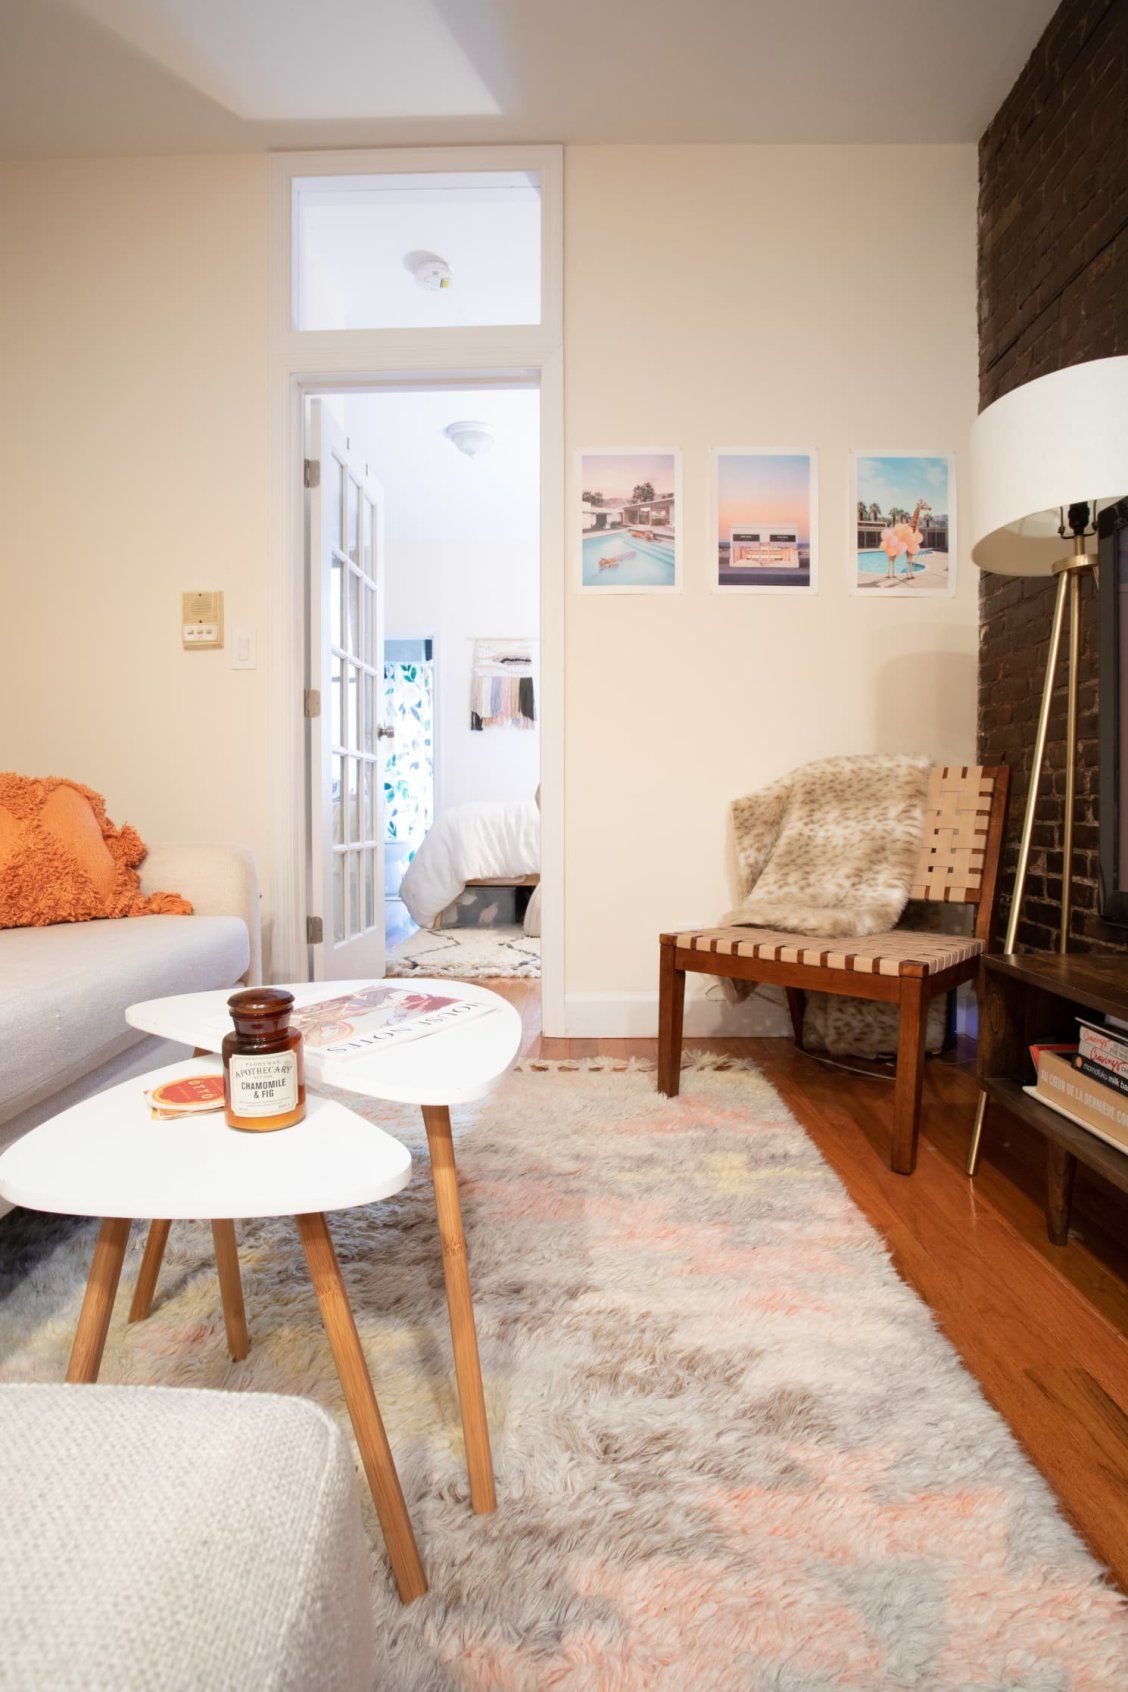 Roommates Decorated This Apartment With Lots of Craigslist